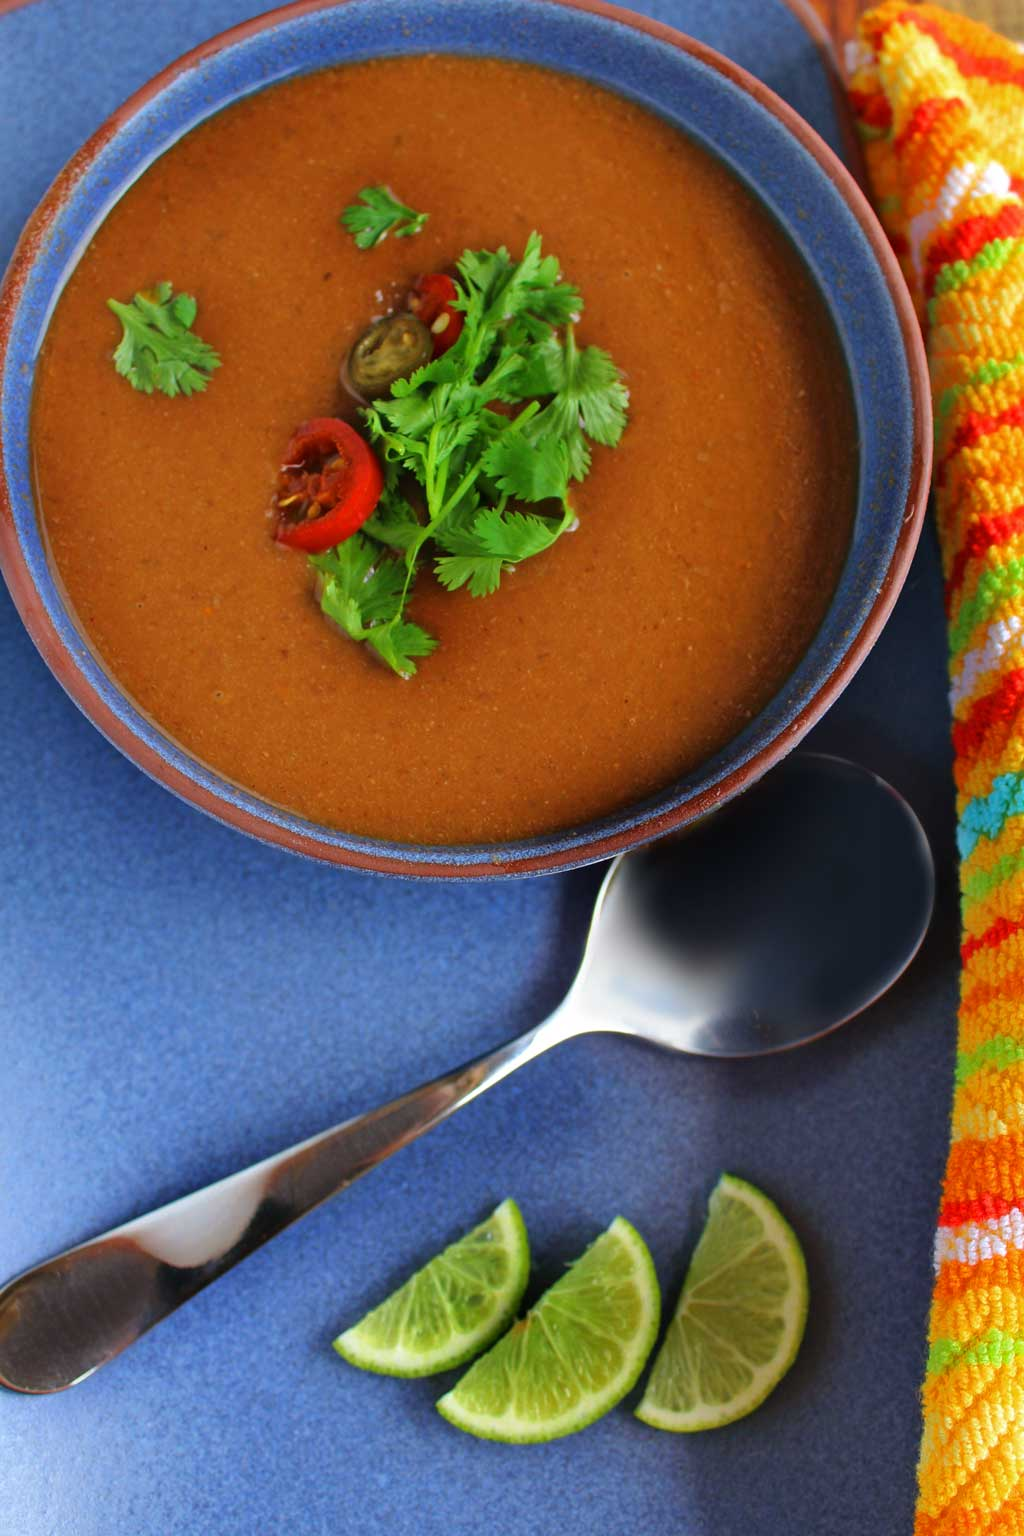 This healthy crock-pot black bean soup is packed with hearty plant-based protein, veggie, and spice and oh so easy to make, it practically makes itself. It's light on calories, high in fiber and easy on your wallet. A great recipe to try for Meatless Monday or any day of the week!